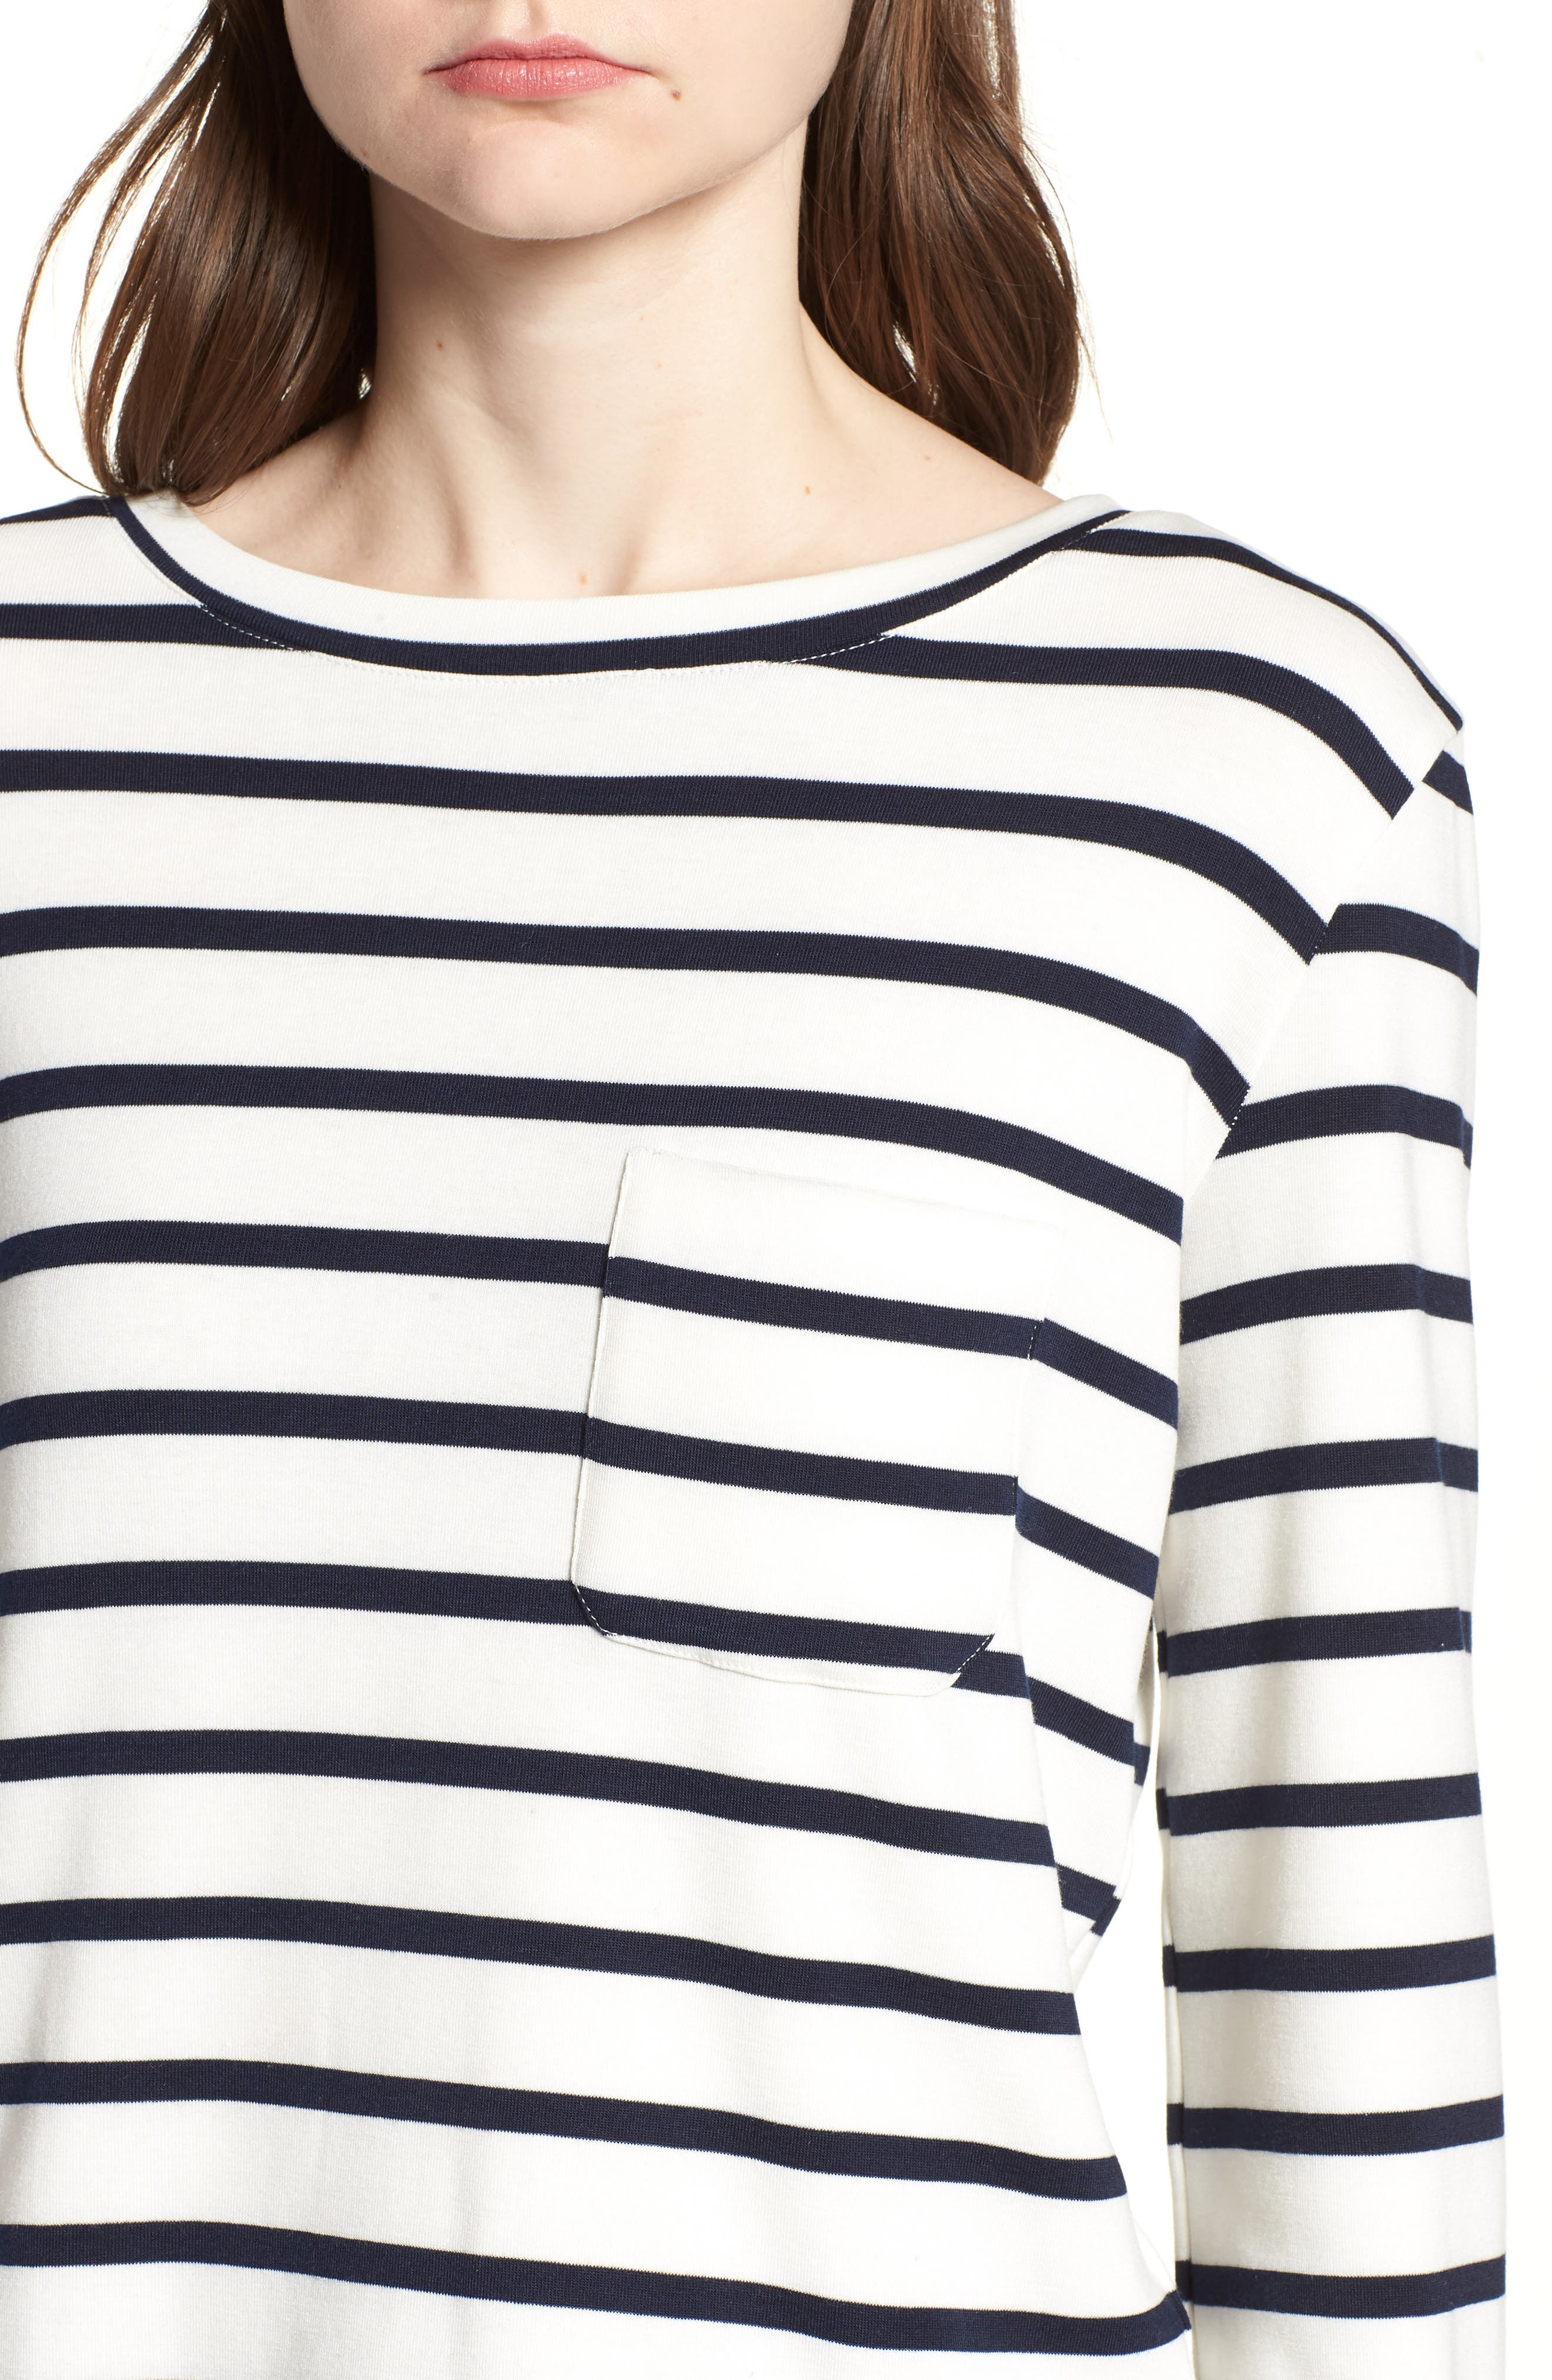 Bishop + Young Stripe Lace-Up Back Top,                             Alternate thumbnail 4, color,                             011